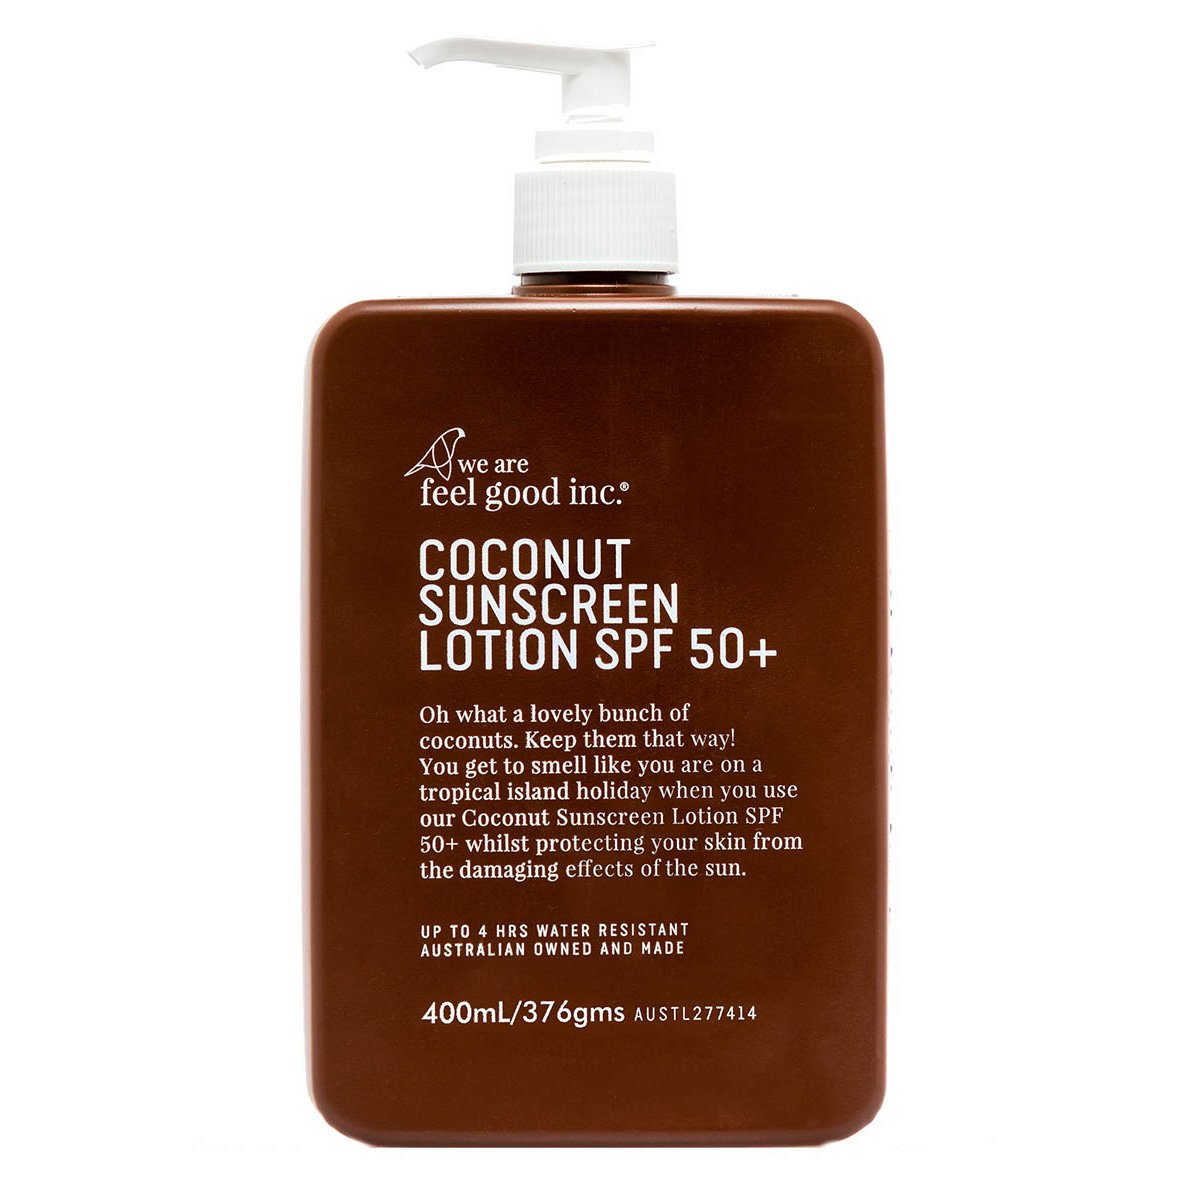 Coconut Sunscreen Lotion SPF 50+, 400ml